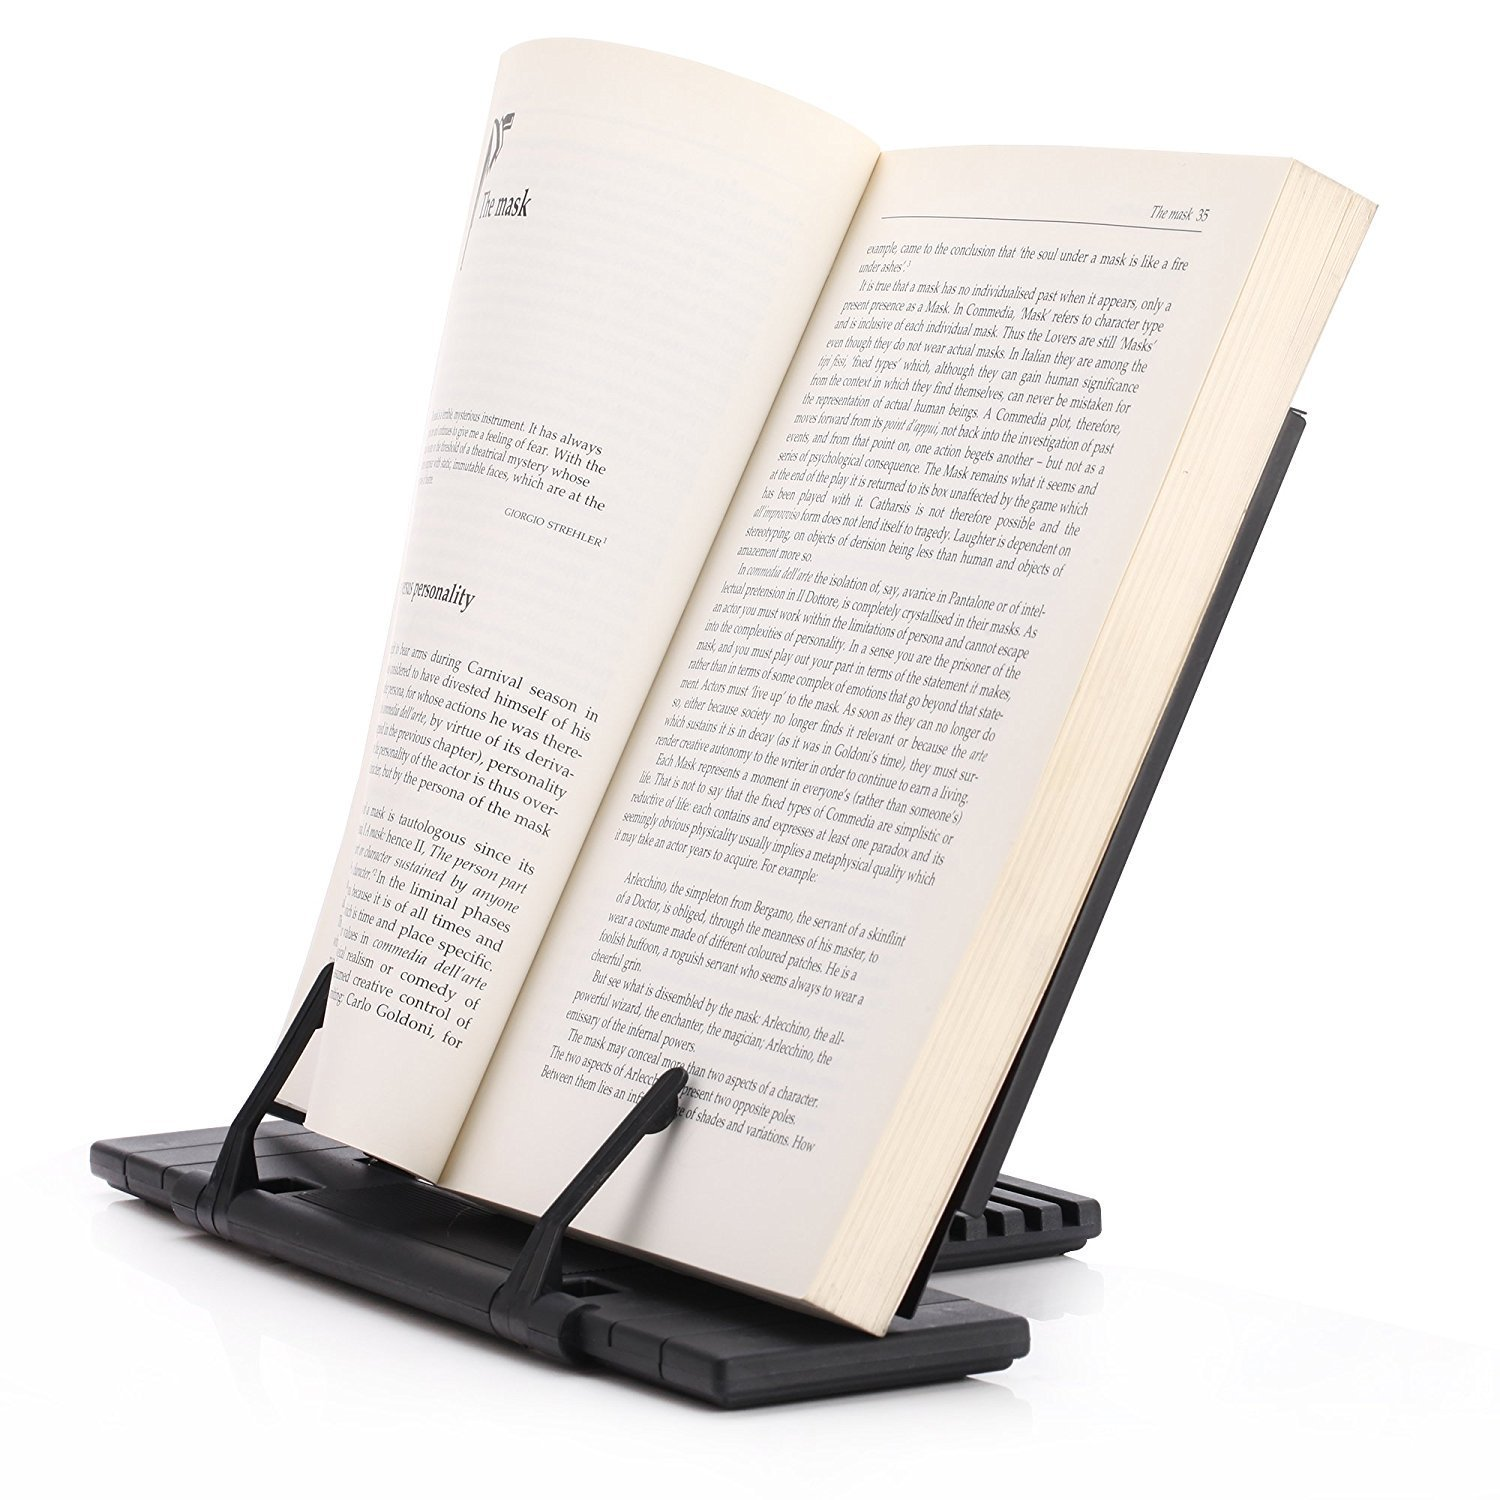 metal portable steel bookstand laptop document stand holder